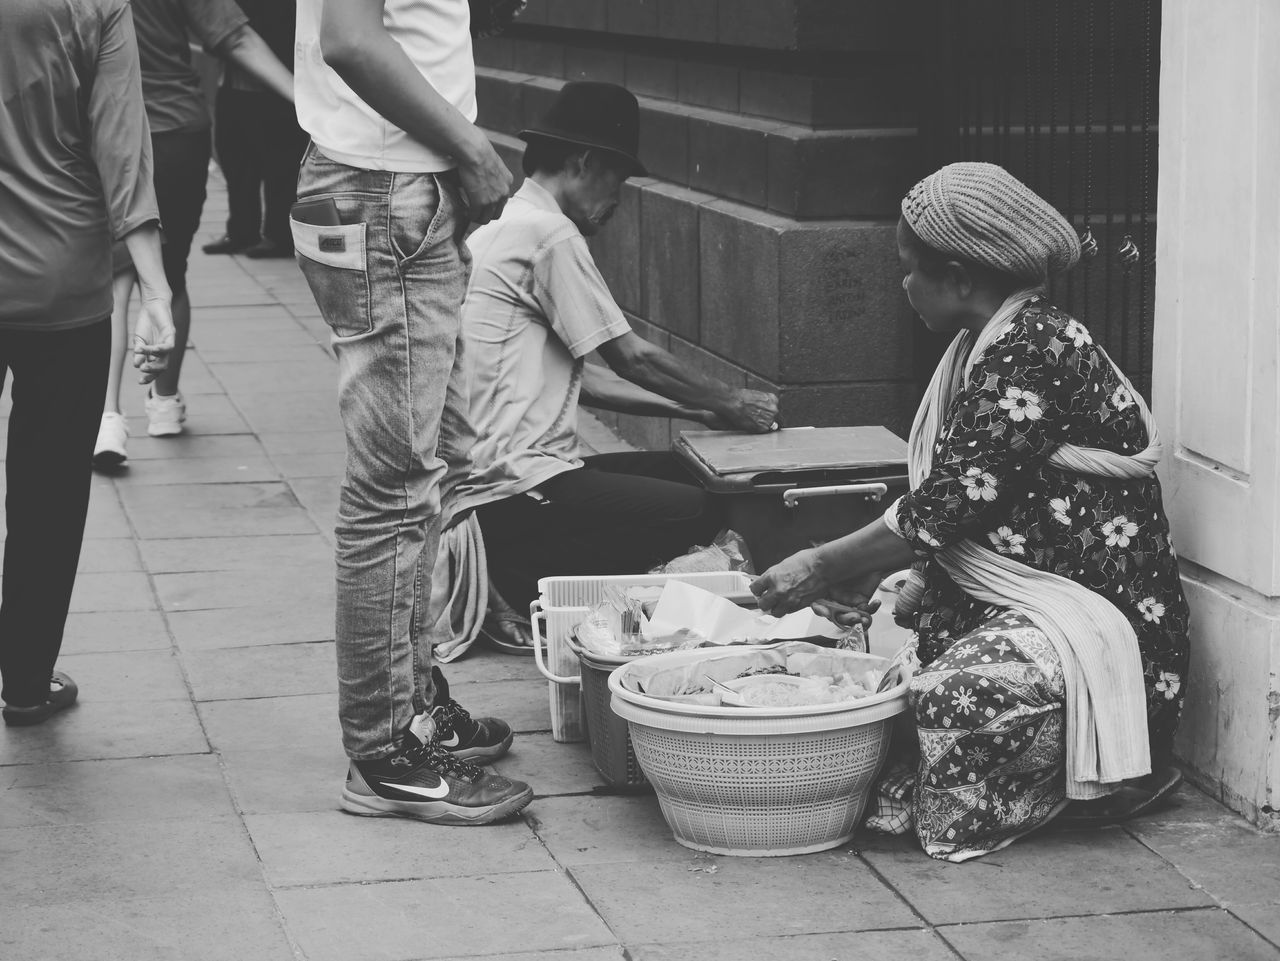 Adult People Domestic Life Adults Only Two People Togetherness Mature Adult Women Only Women Lifestyles Real People Full Length Day Indoors  Cleaning Equipment Young Adult The Street Photographer - 2017 EyeEm Awards